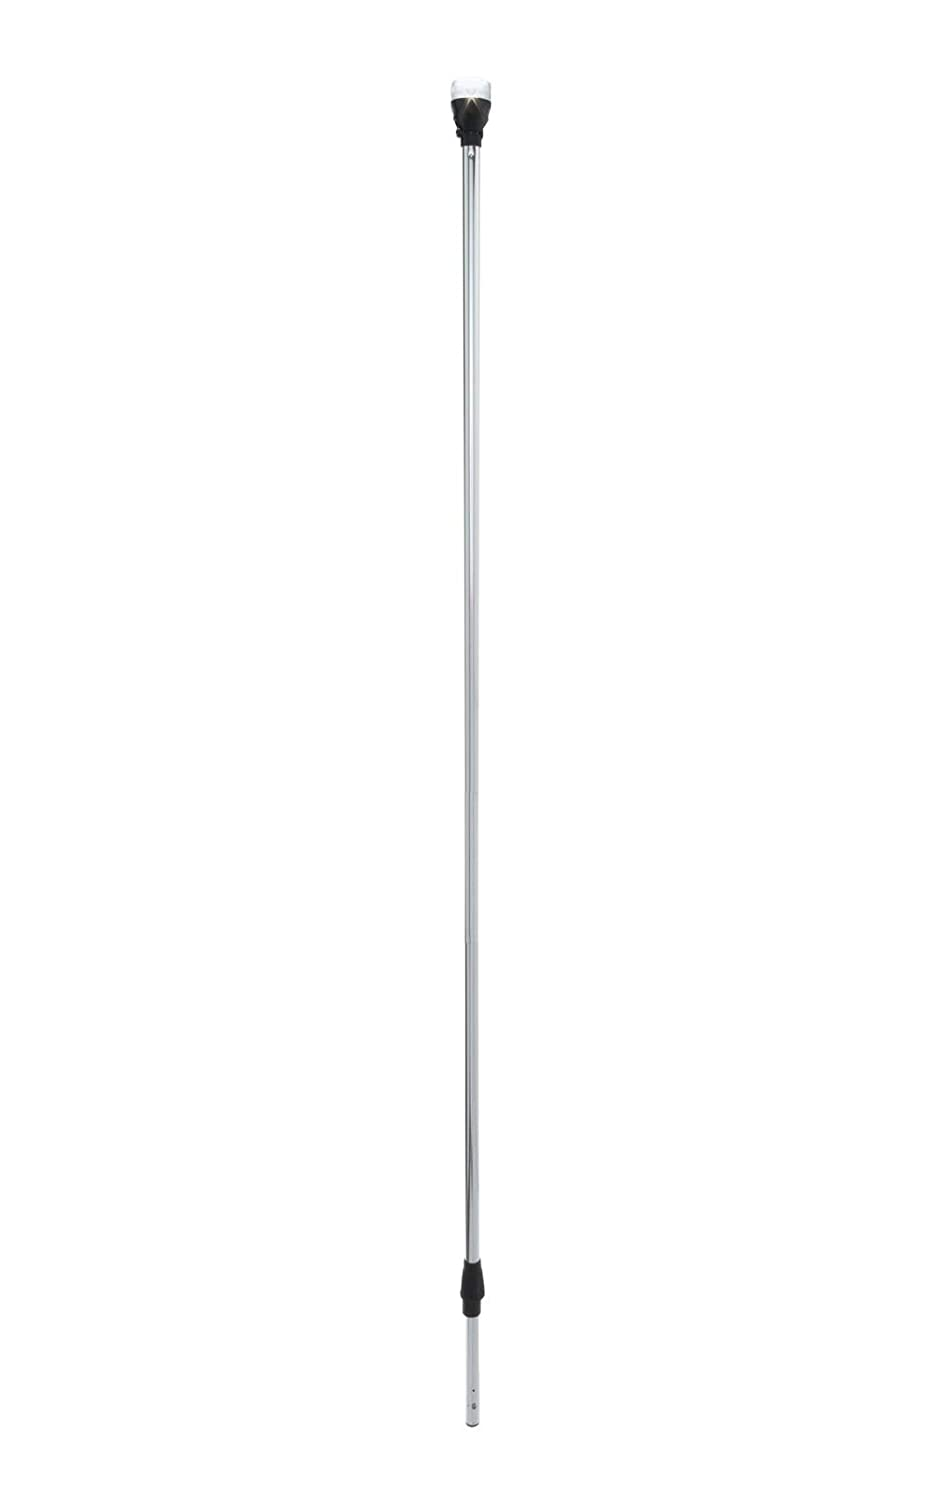 Boating & Watersports Perko 1445DP5CHR 42-Inch 5 Degree Closed Top All Around Light Pole